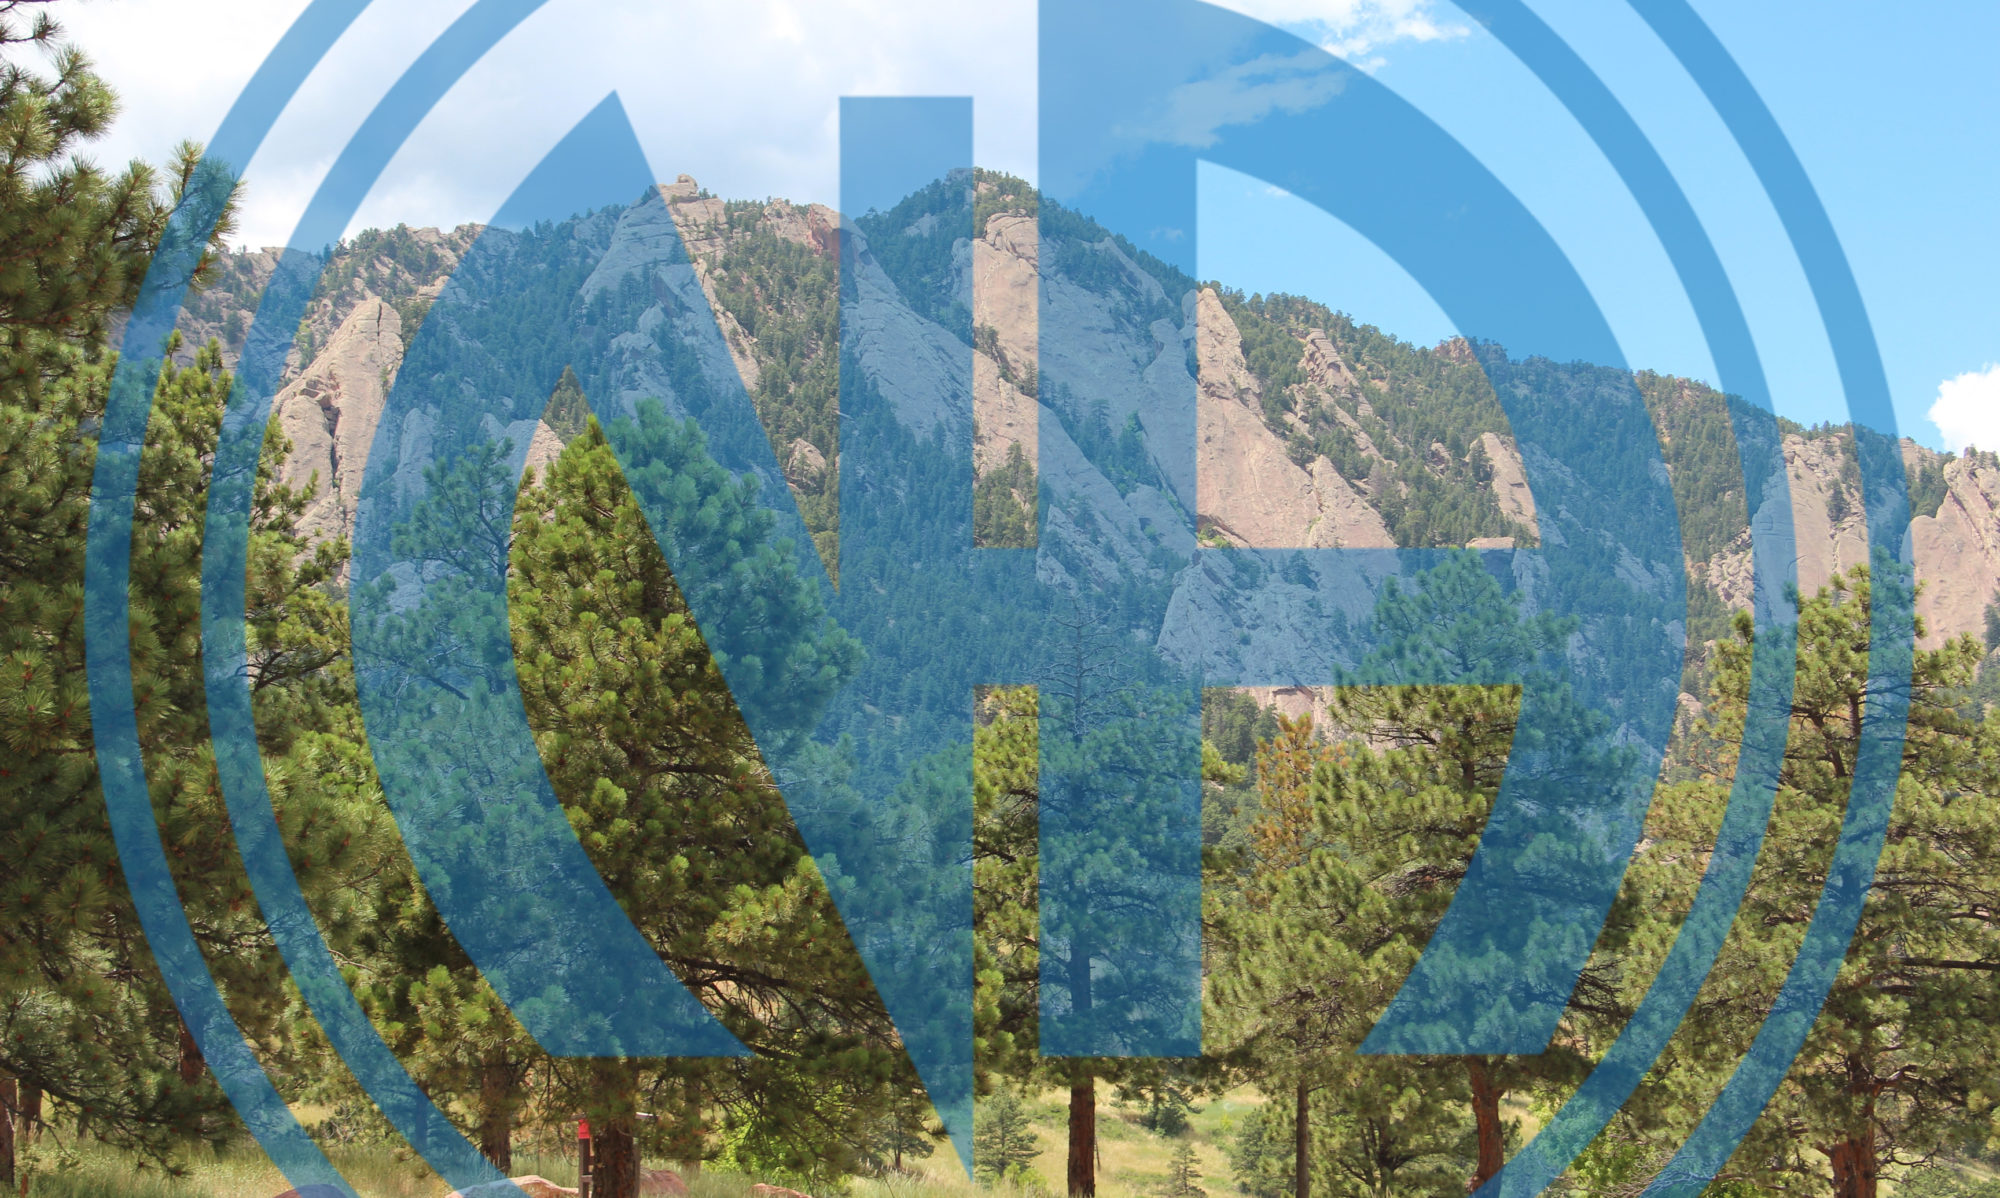 Boulder Area of Narcotics Anonymous